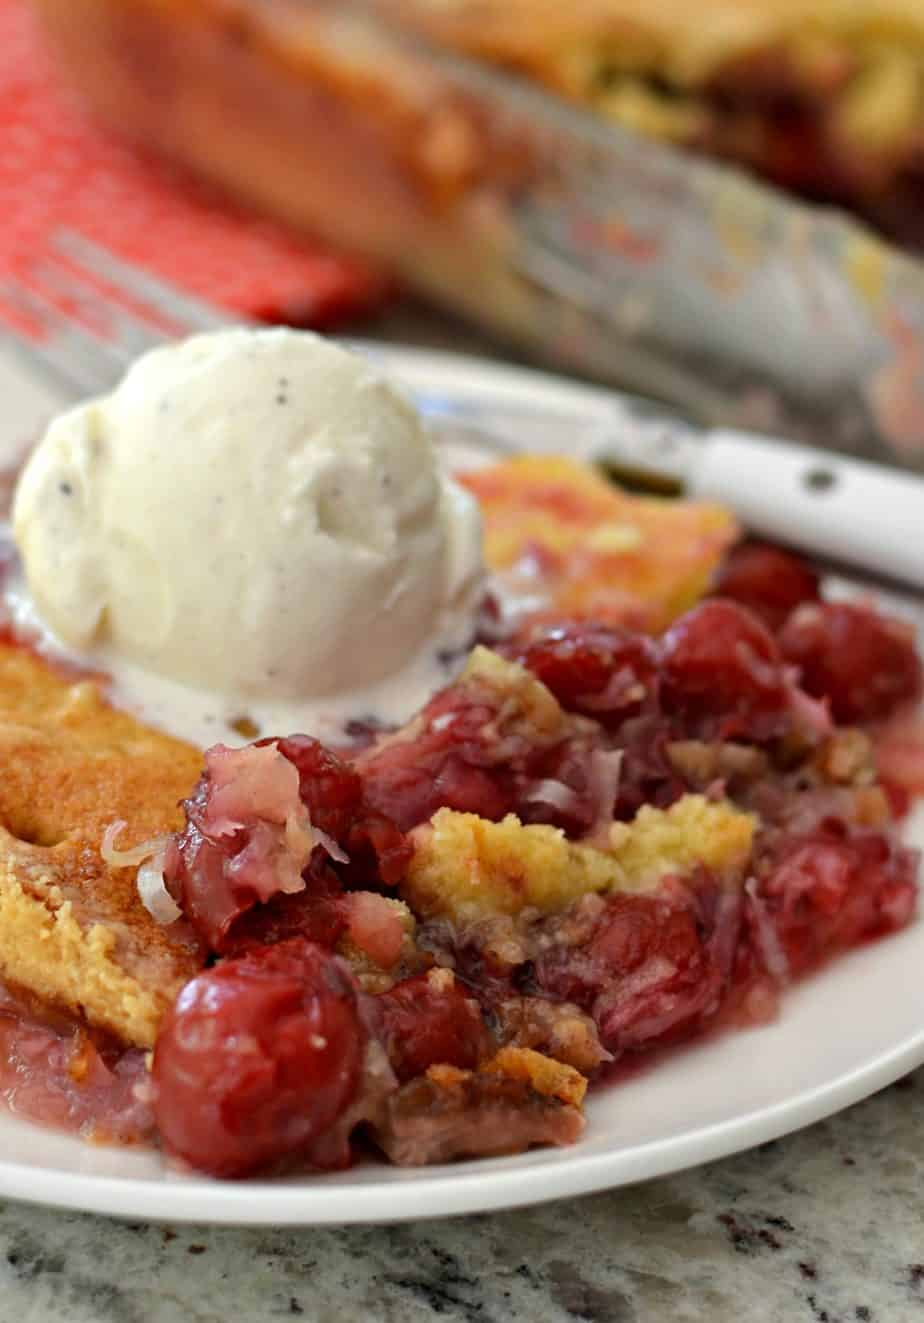 This family friendly scrumptious cherry dump cake has six easy ingredients comes together in less than ten minutes